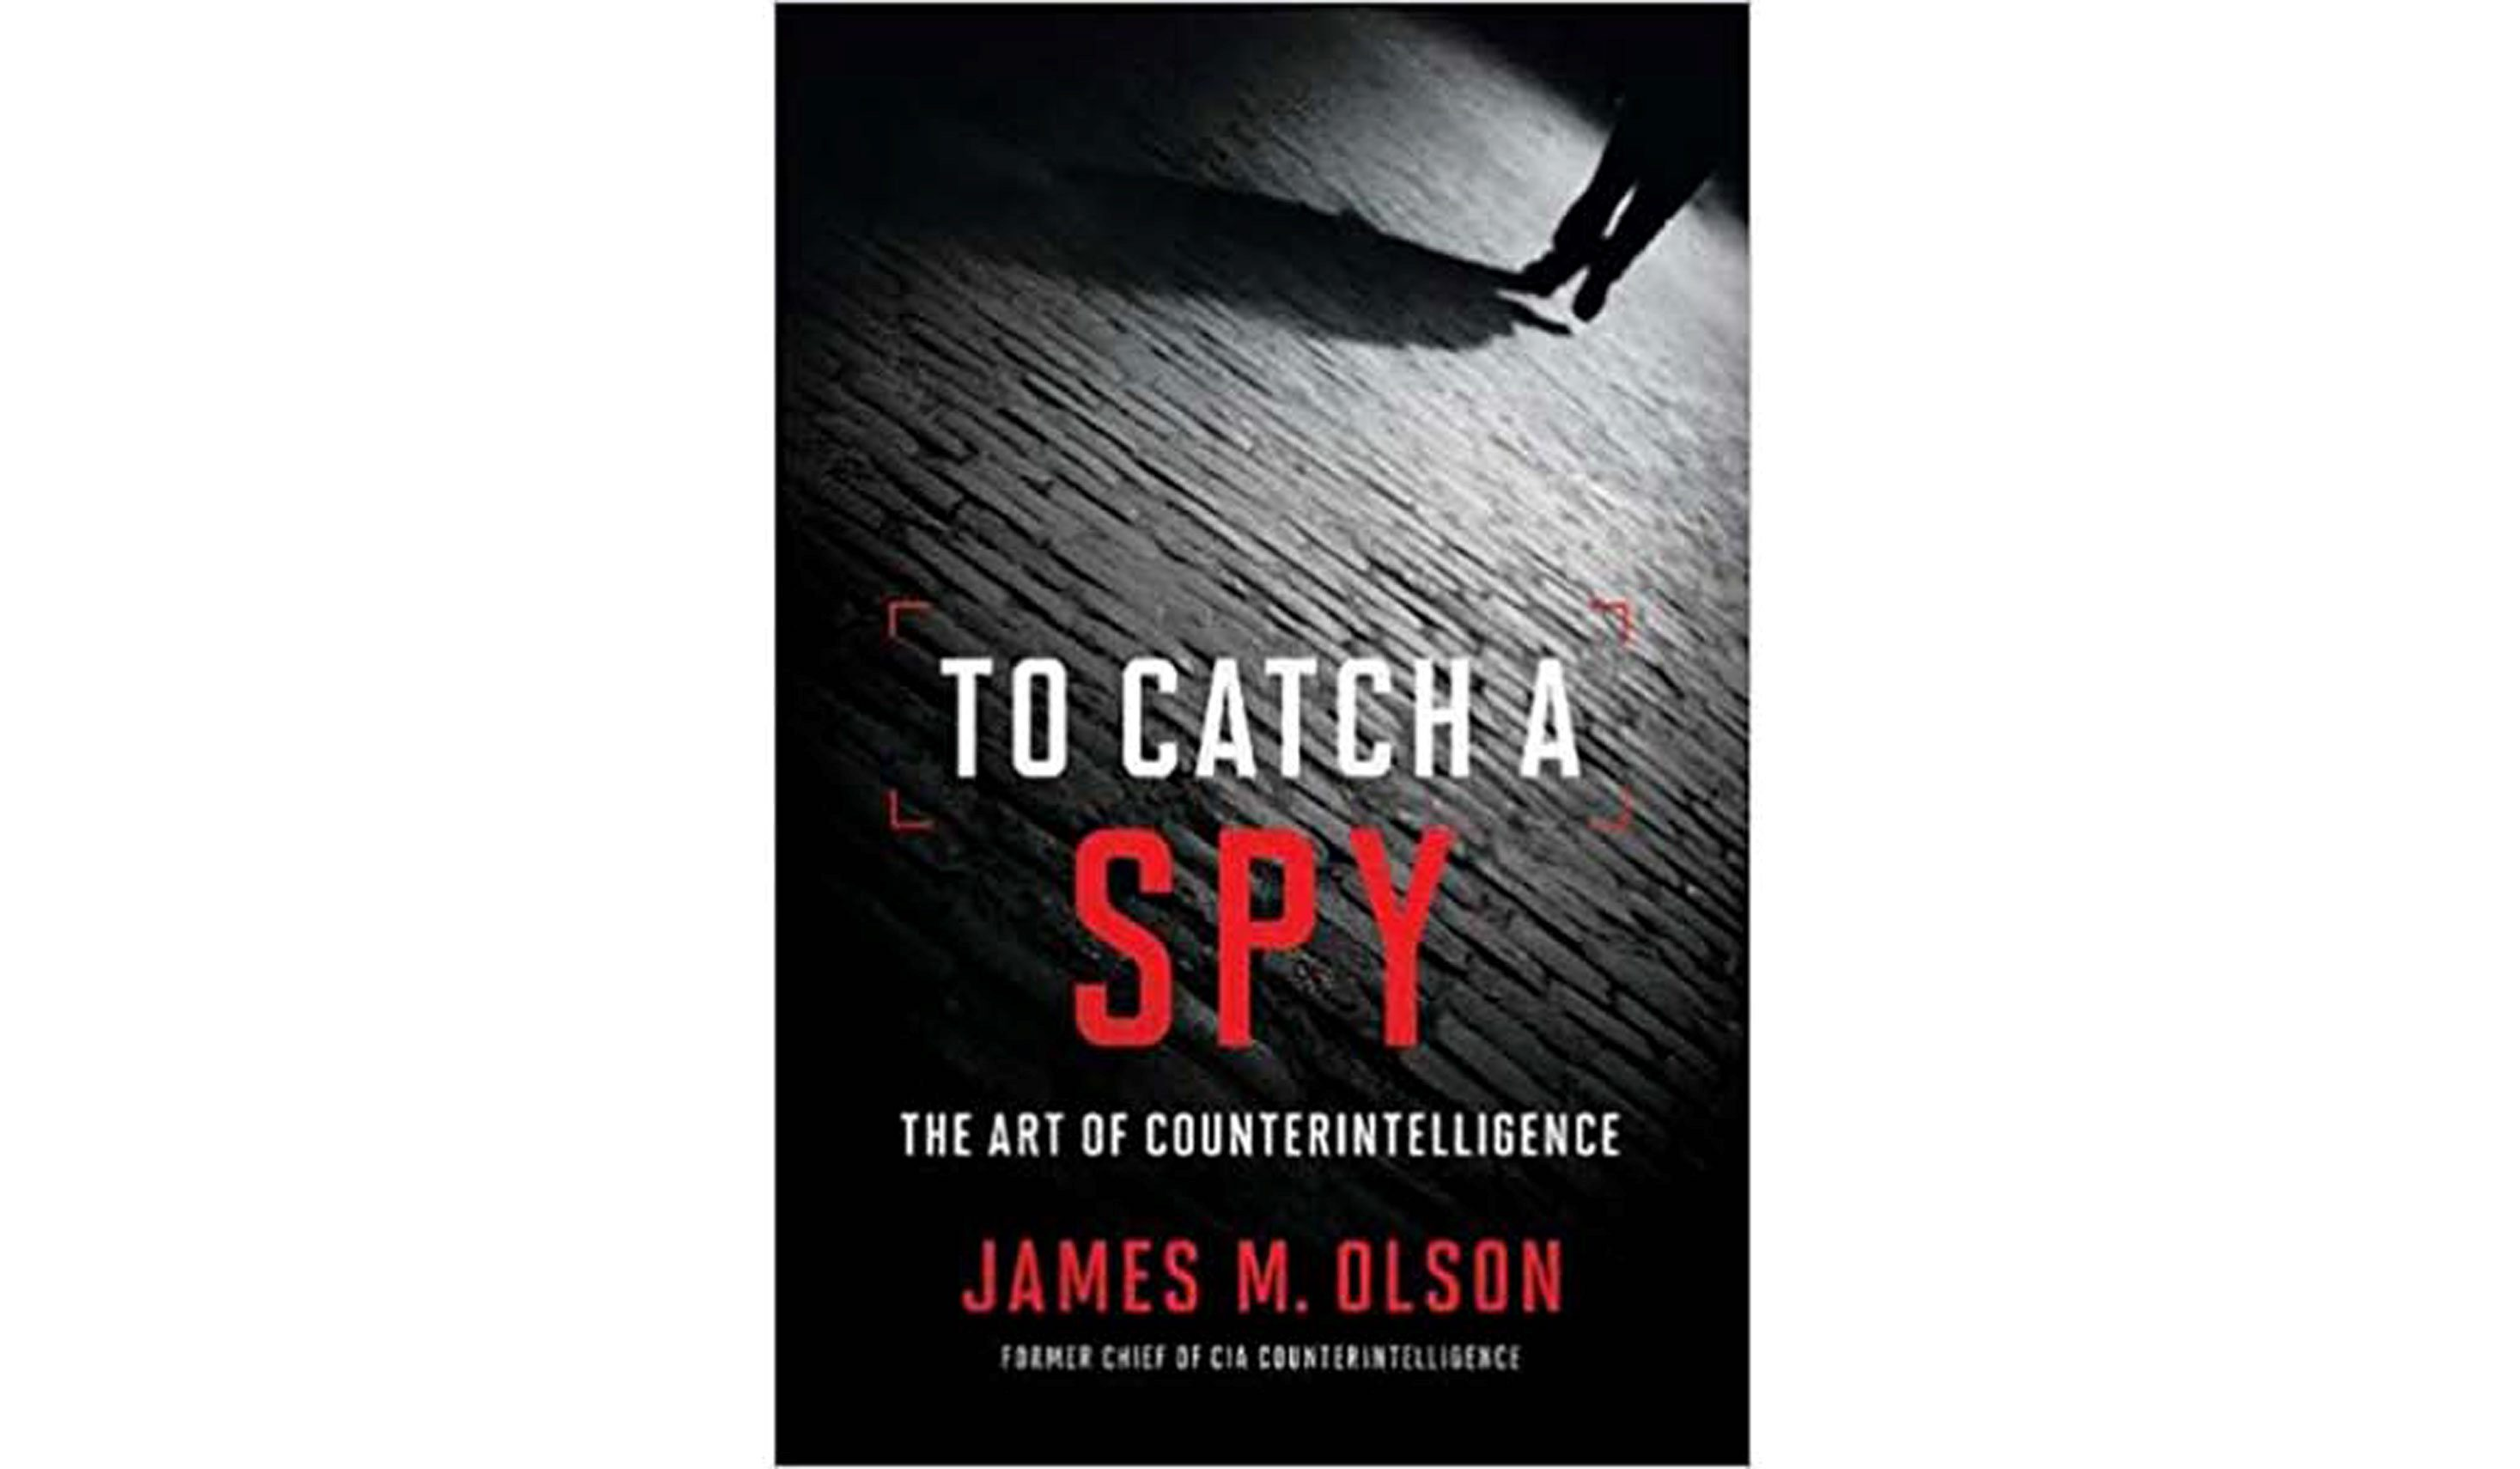 BOOK REVIEW: 'To Catch a Spy' by James M. Olsen